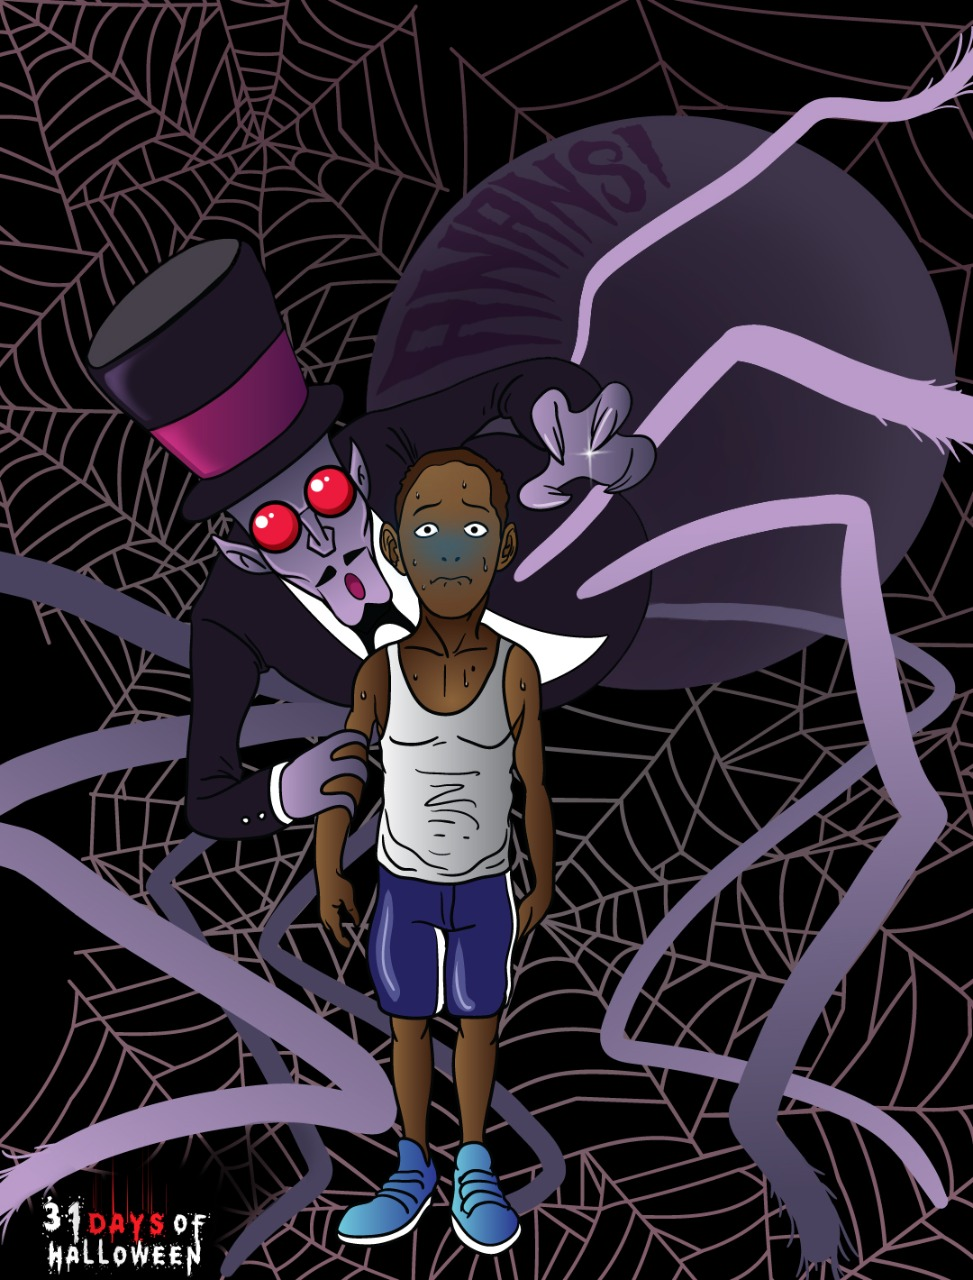 Day 4 - Anansi the Spider (Afro-Caribbean folklore)